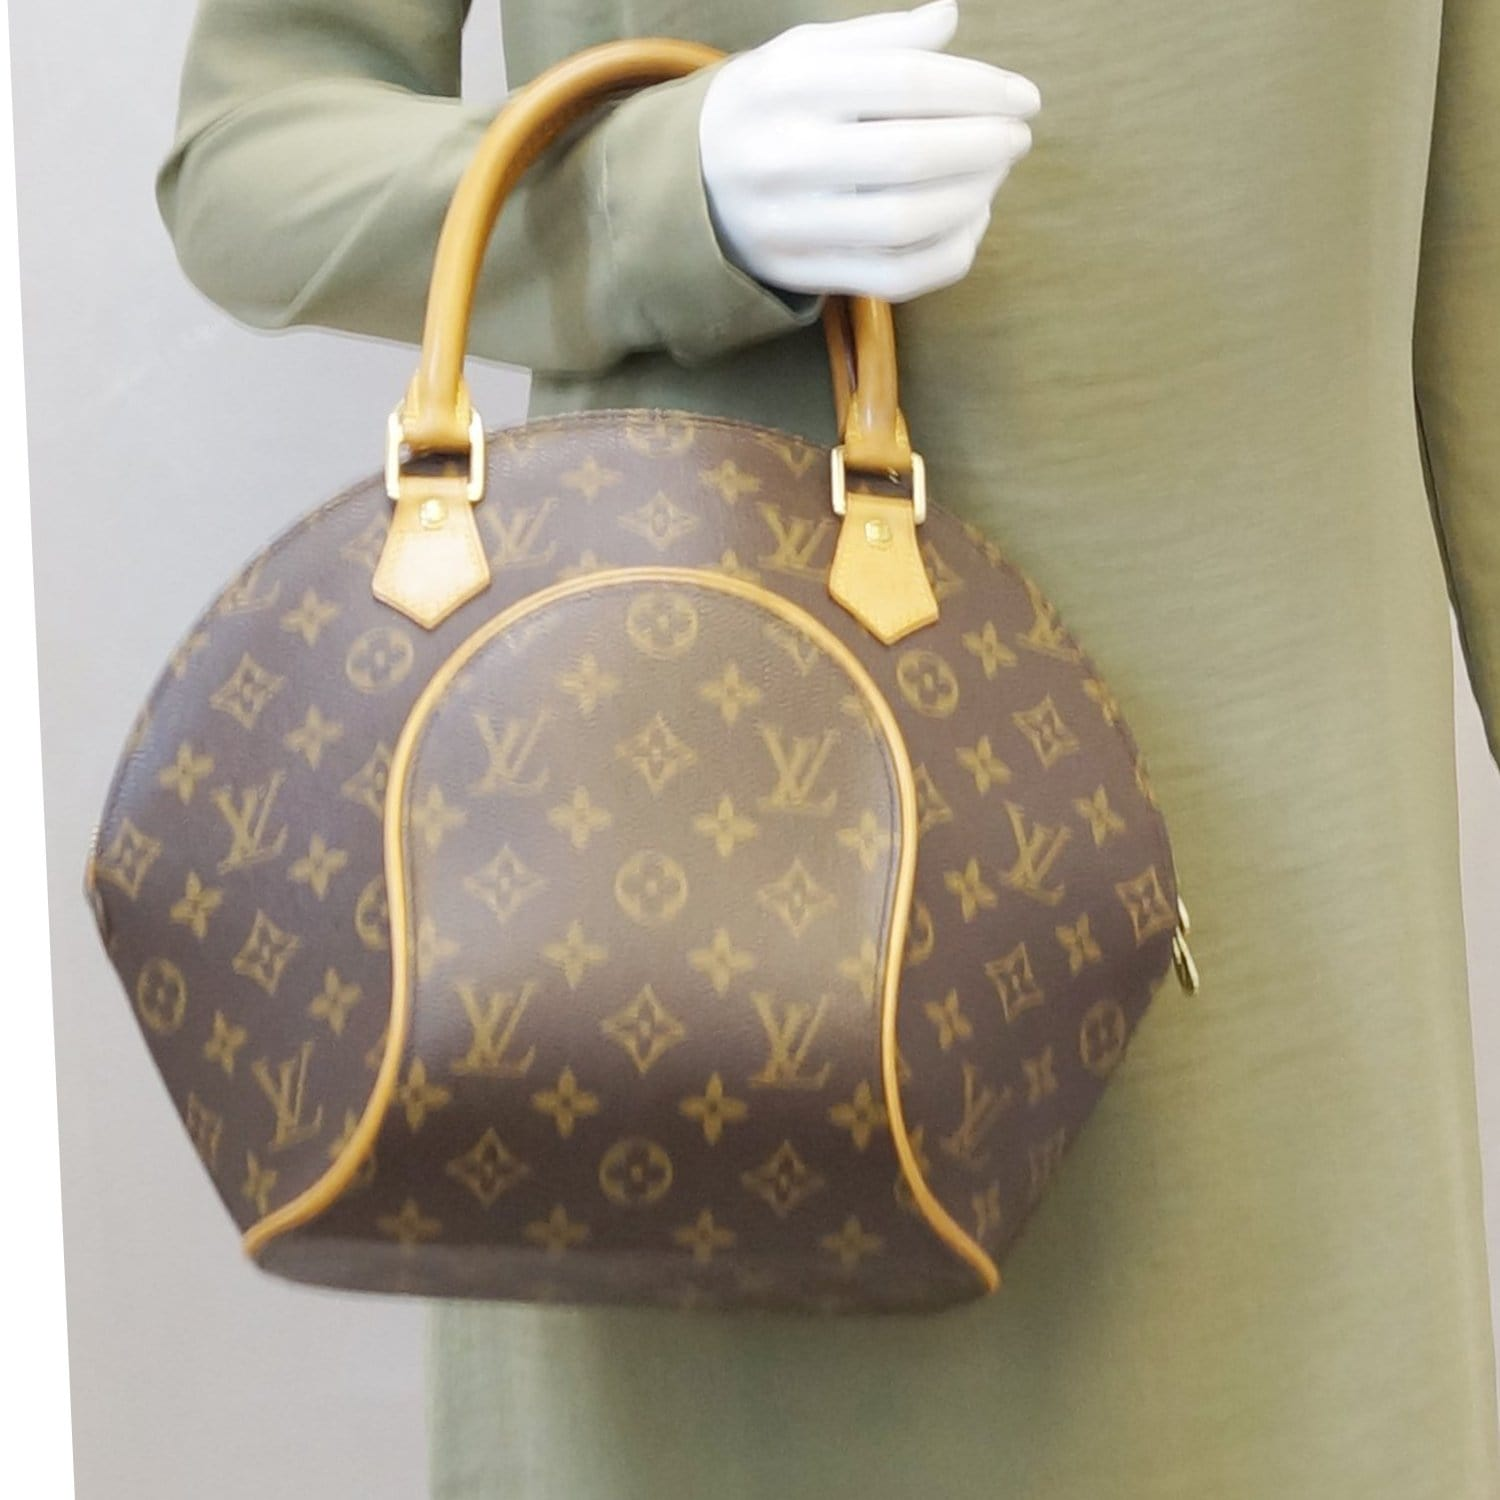 b6afc027a LOUIS VUITTON Ellipse PM Monogram Canvas Satchel Handbag